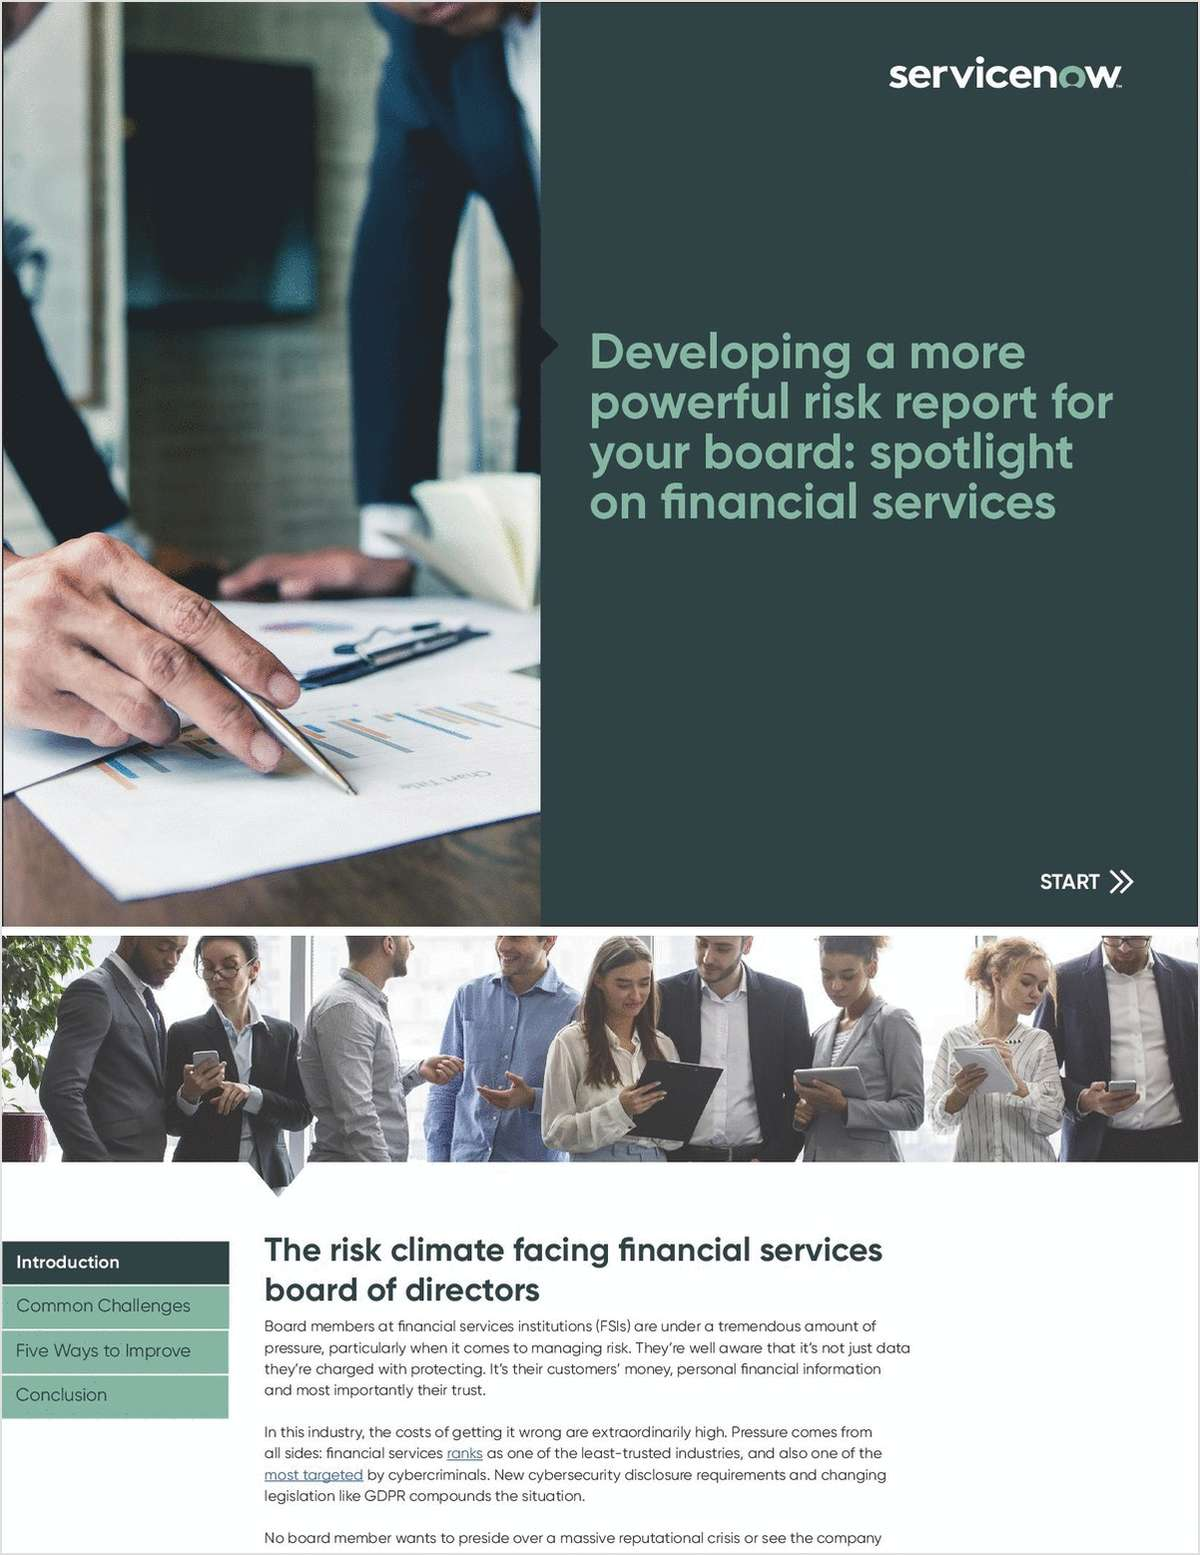 Developing a More Powerful Risk Report for Financial Services